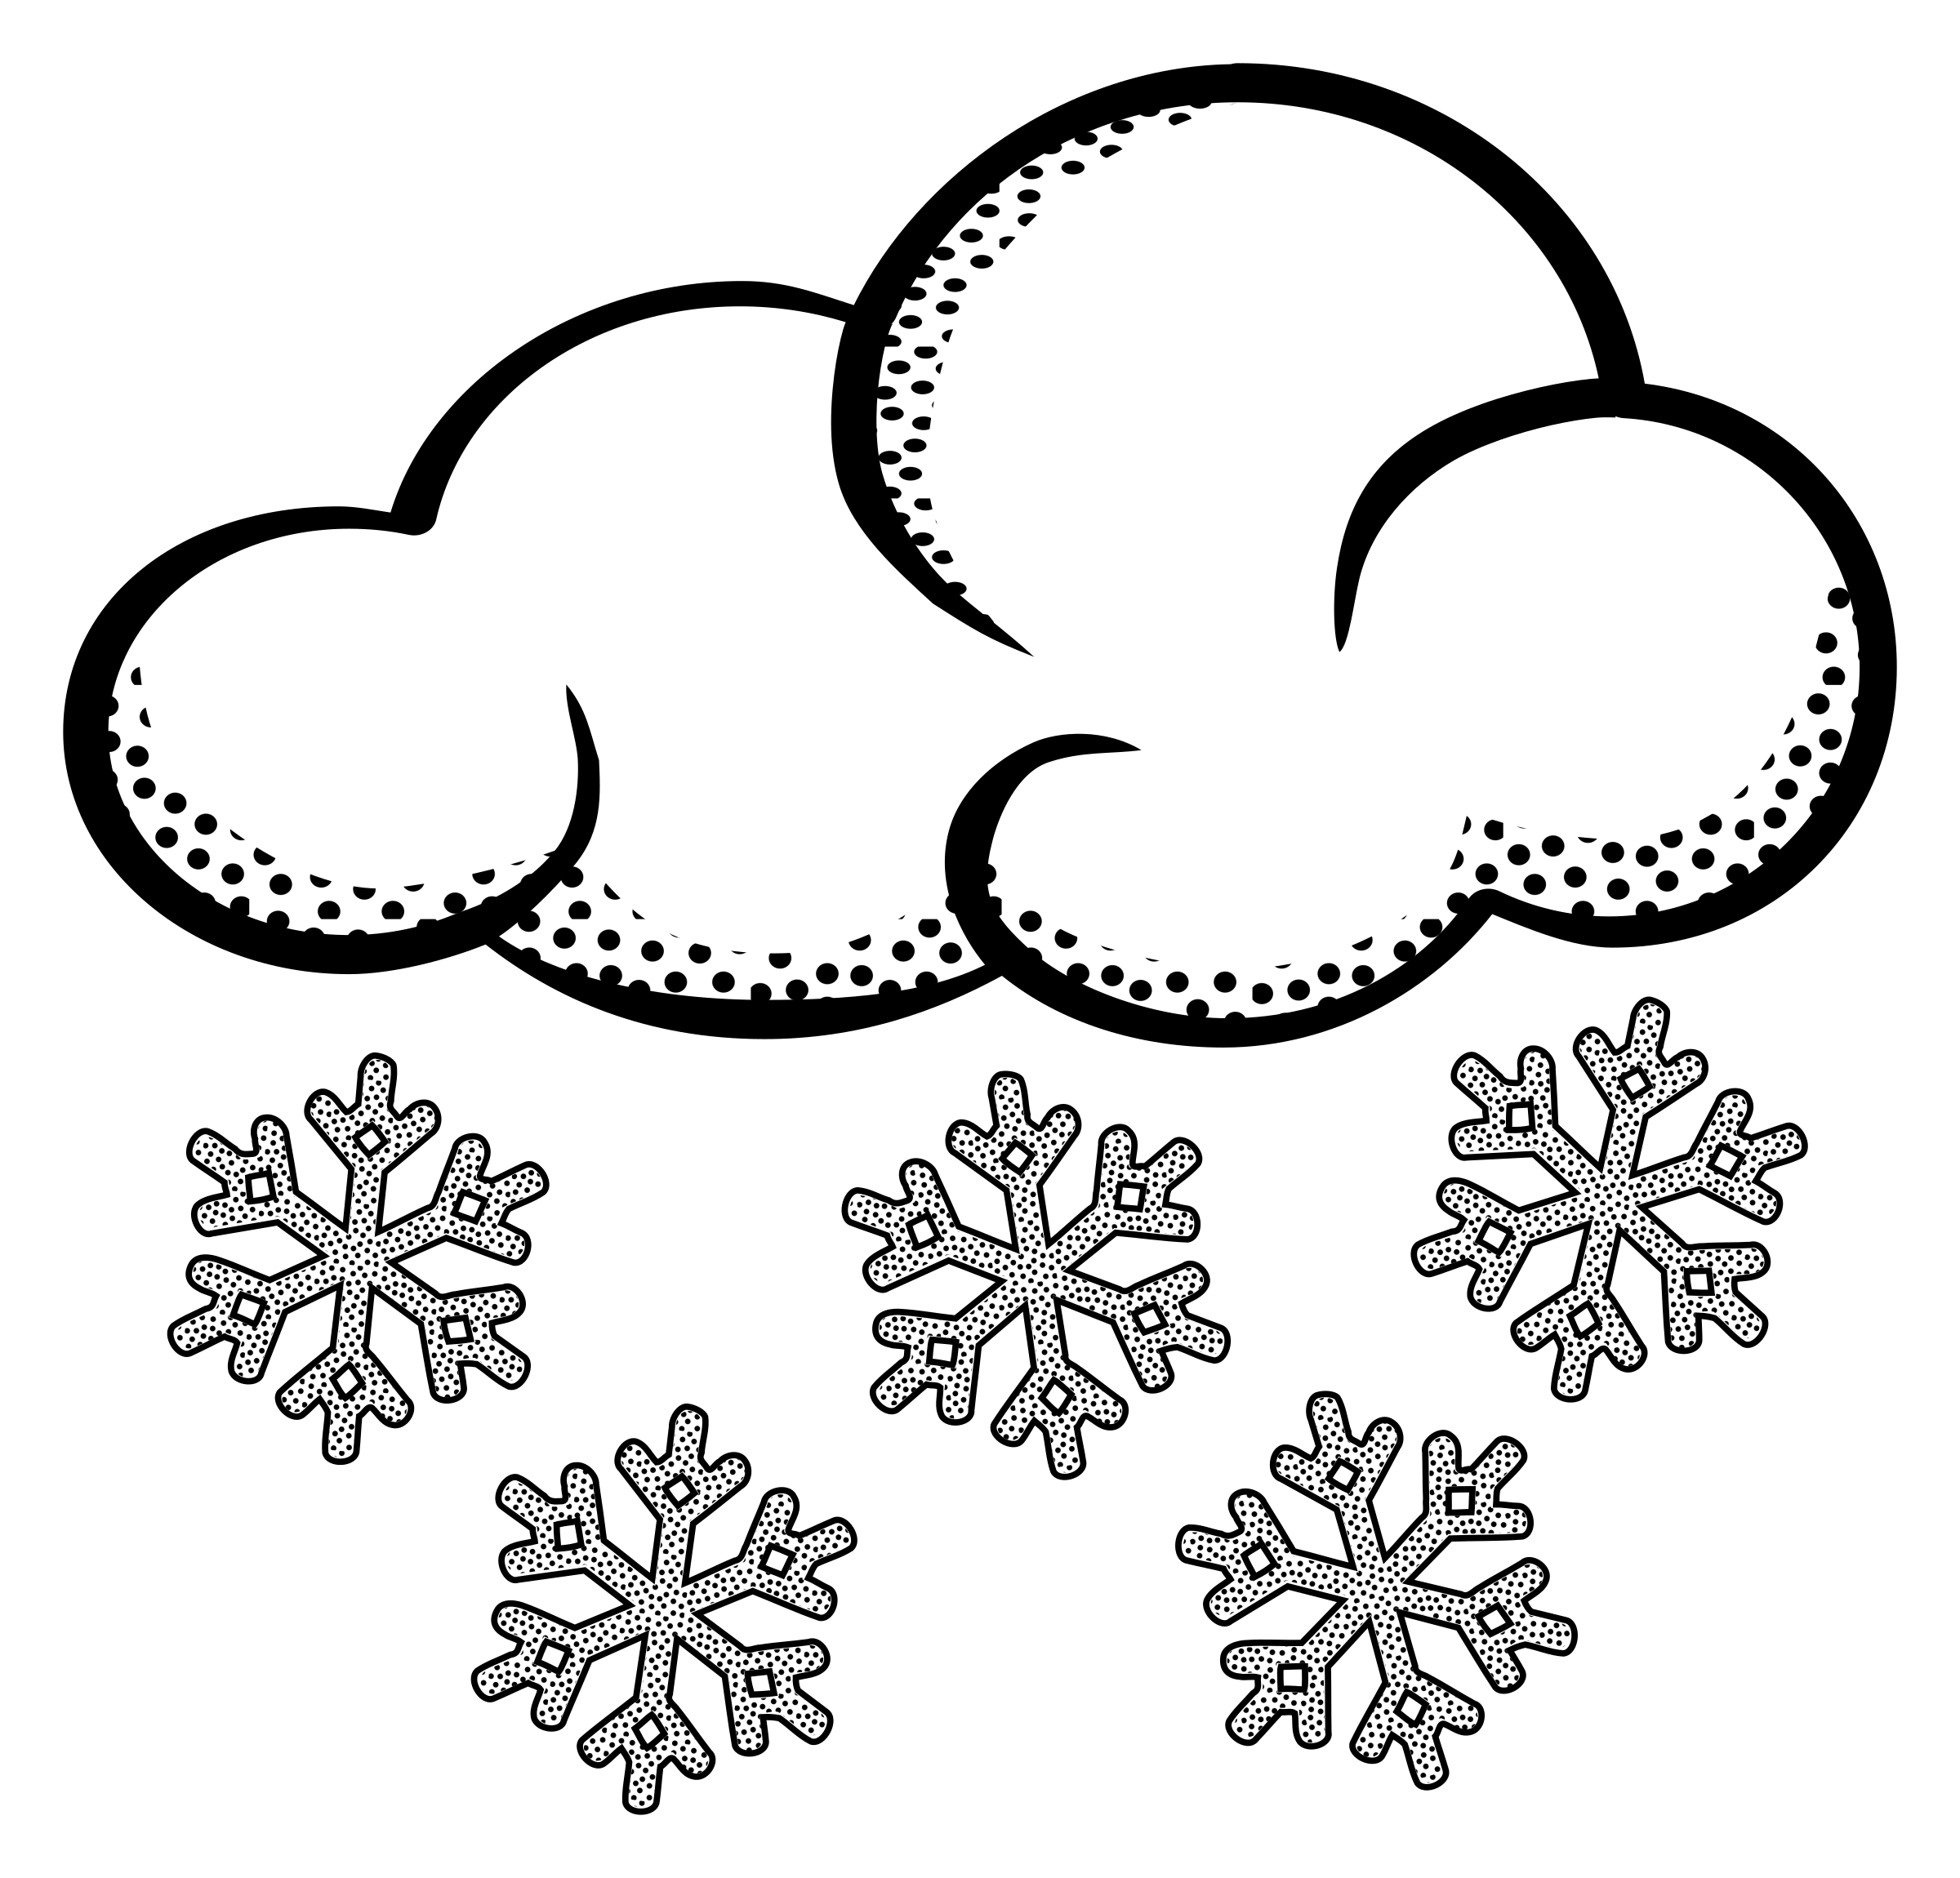 Snowflake cloud clipart clip free library 28+ Collection of Falling Snowflake Clipart Black And White | High ... clip free library